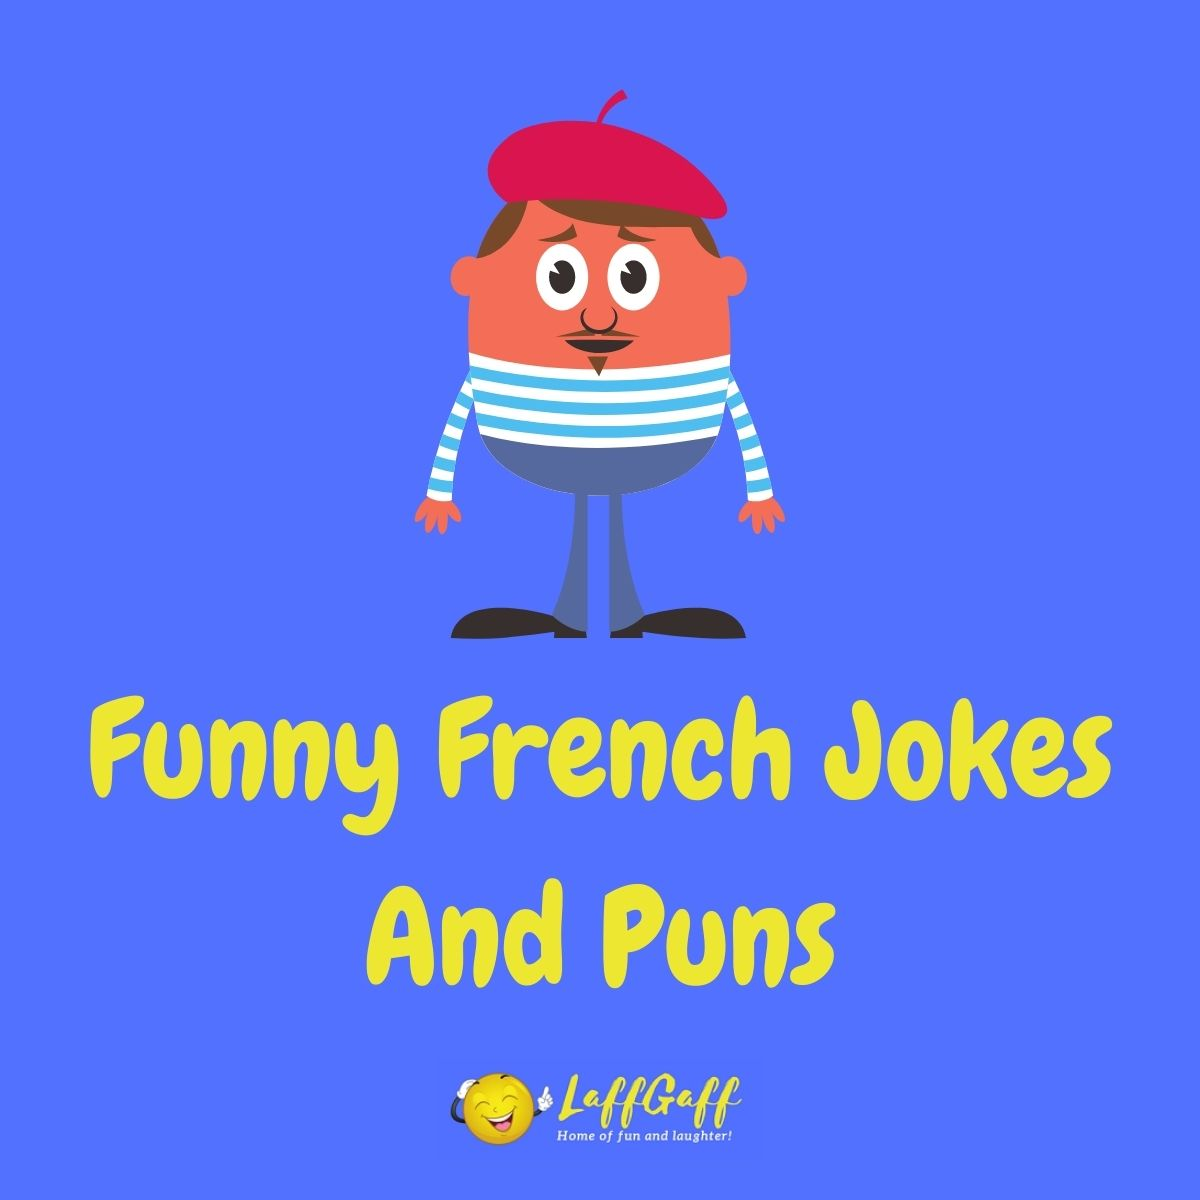 Featured image for a page of funny French jokes and puns.